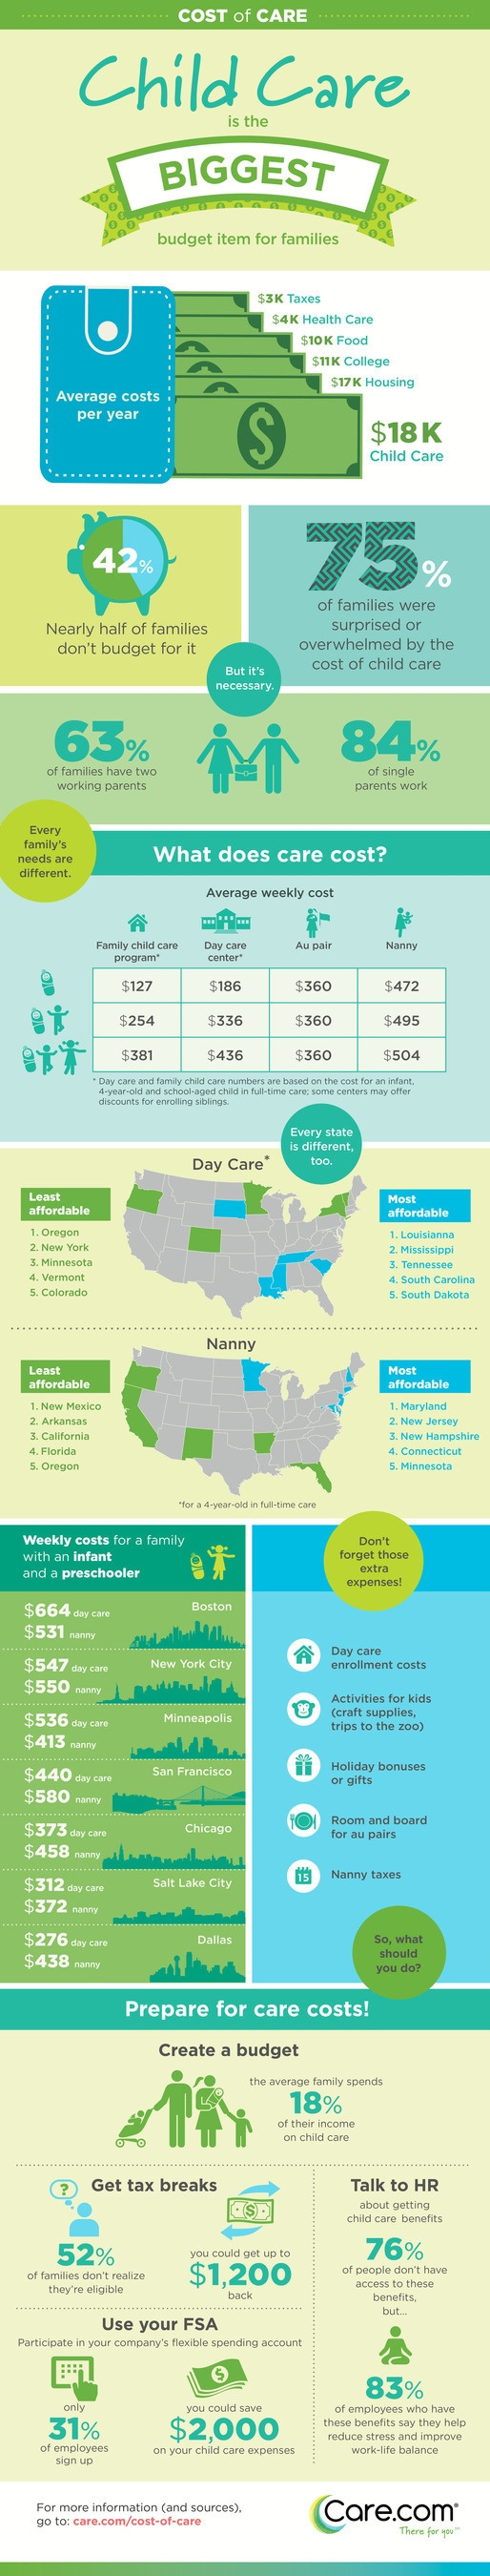 Care.com Reports, Care.com Reports Nearly Half of U.S. Families Don't Budget for Child Care #CharmPosh